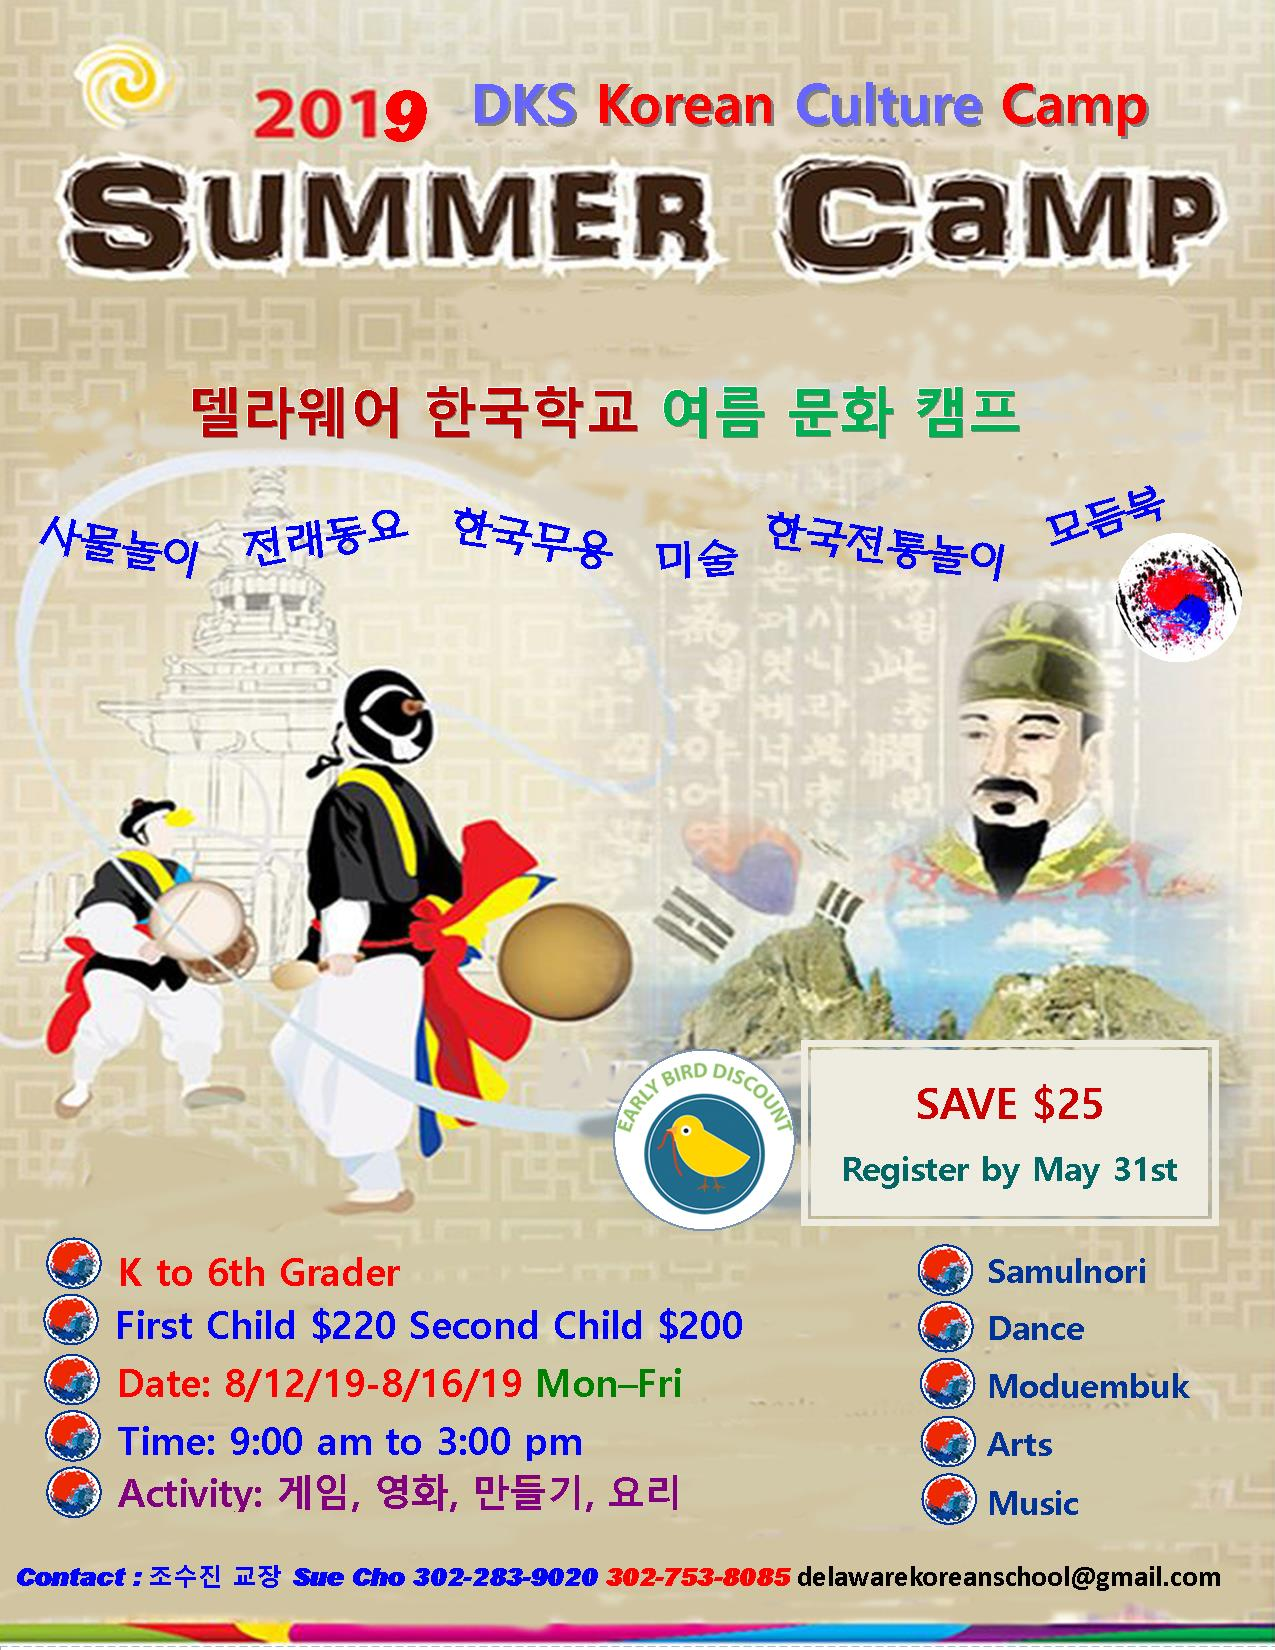 2019 DKS Summer Camp new.jpg